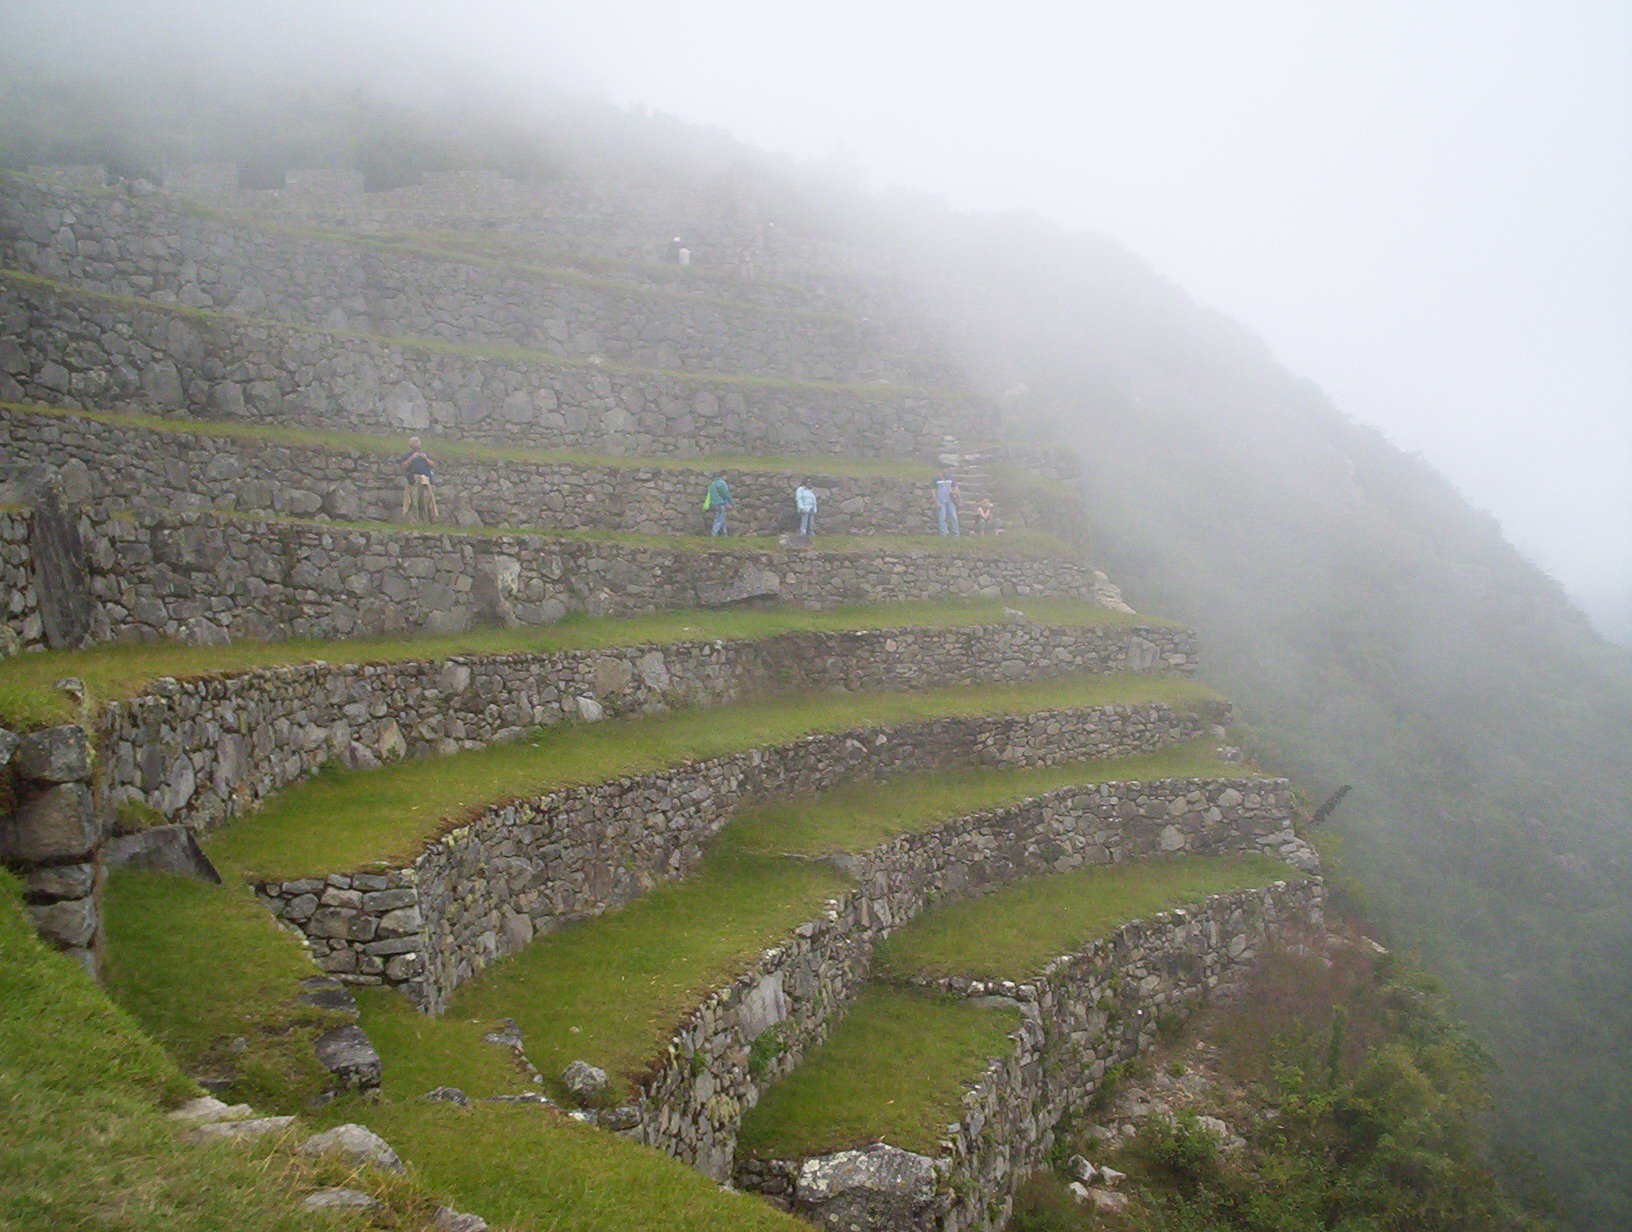 Some low lying clouds envelope the nicely landscaped terraces of Machu Picchu.